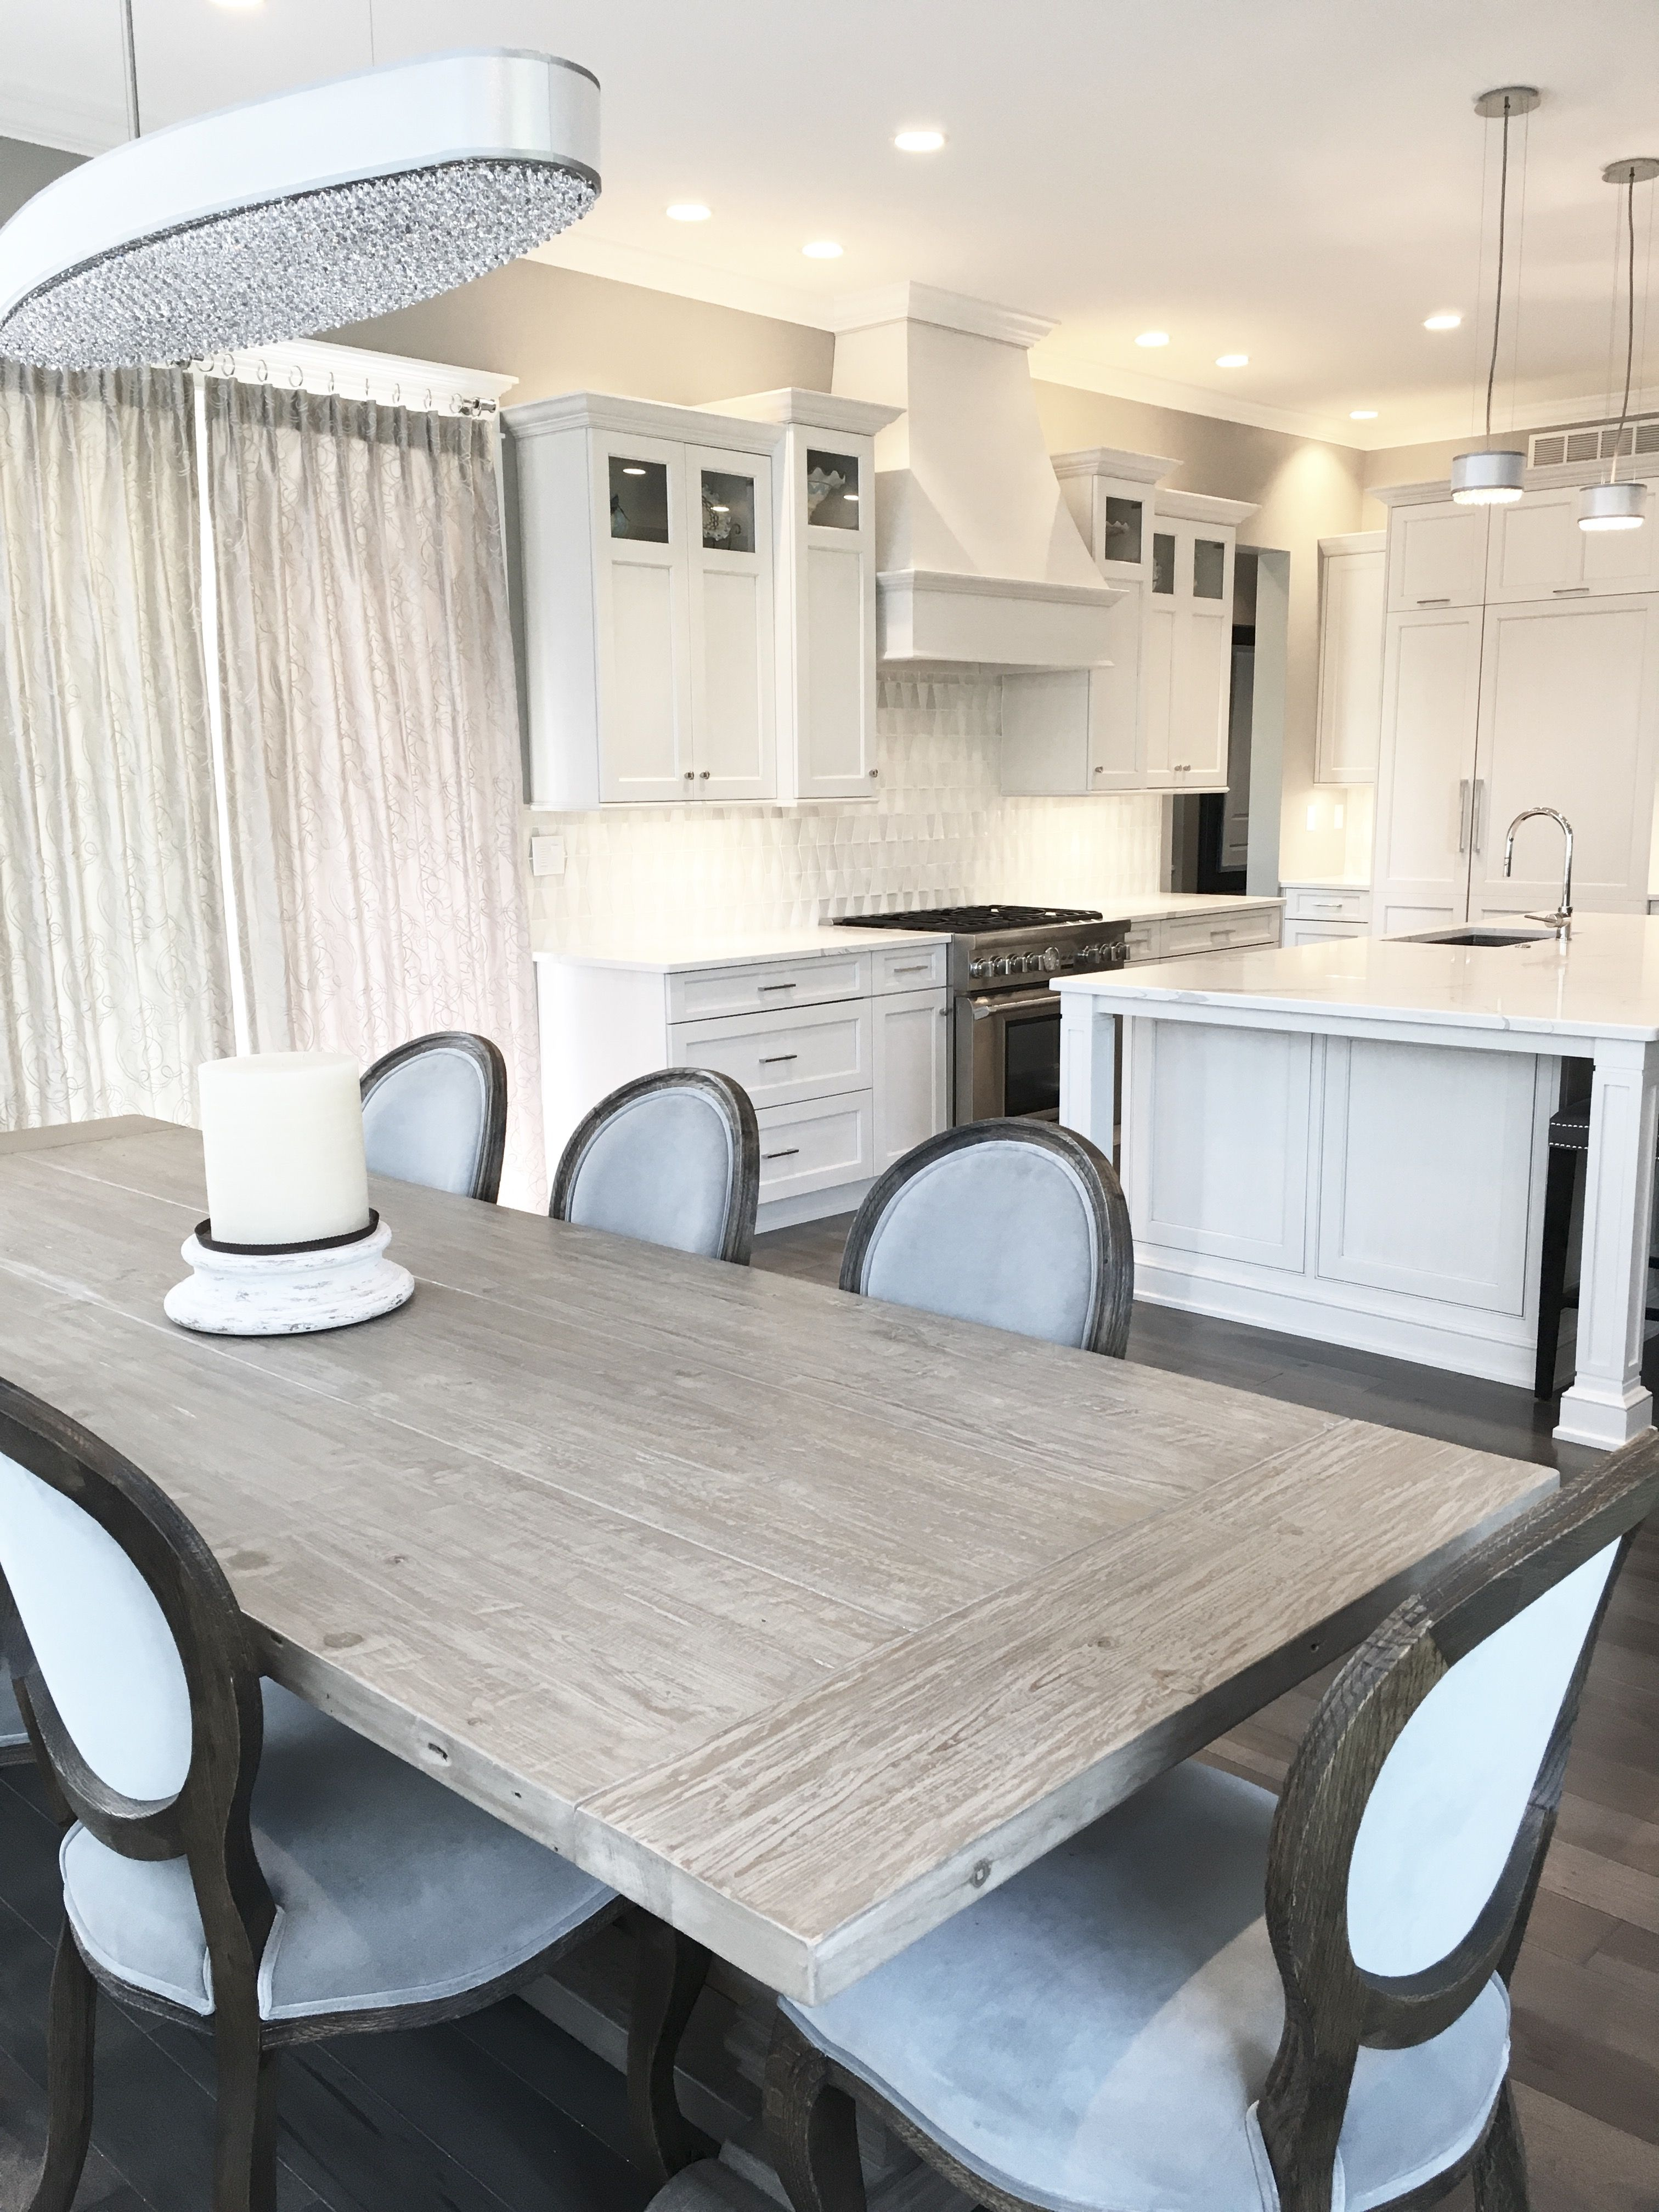 recently completed concept ii kitchen design in rochester, ny